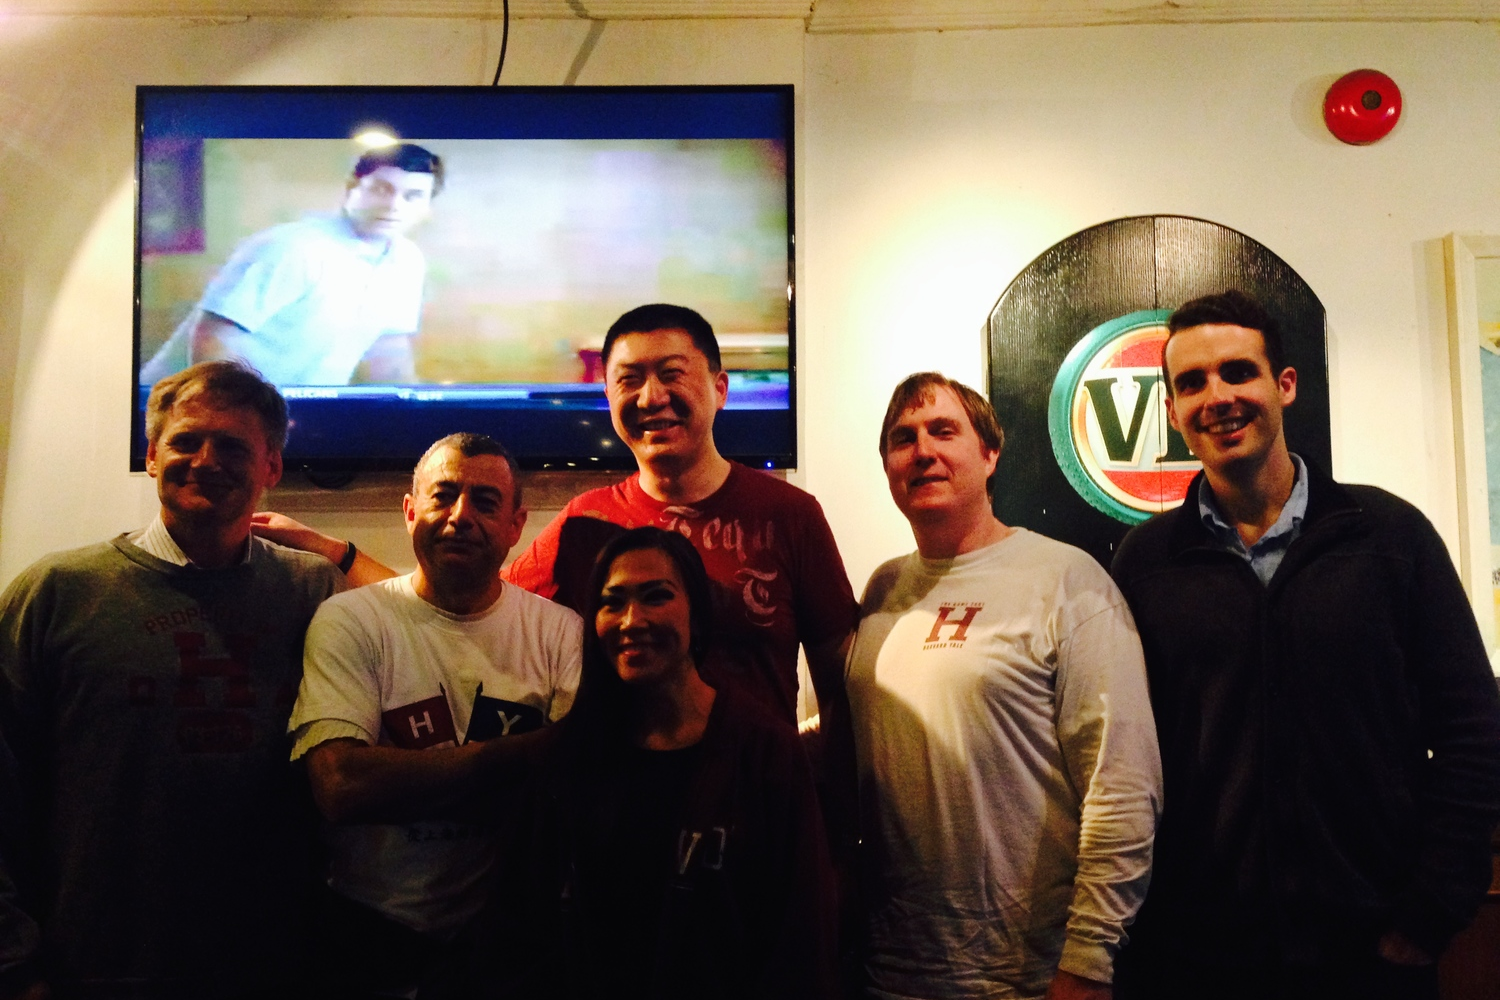 Harvard alumsbasking in victory at the Camel Sports Bar in Shanghai.